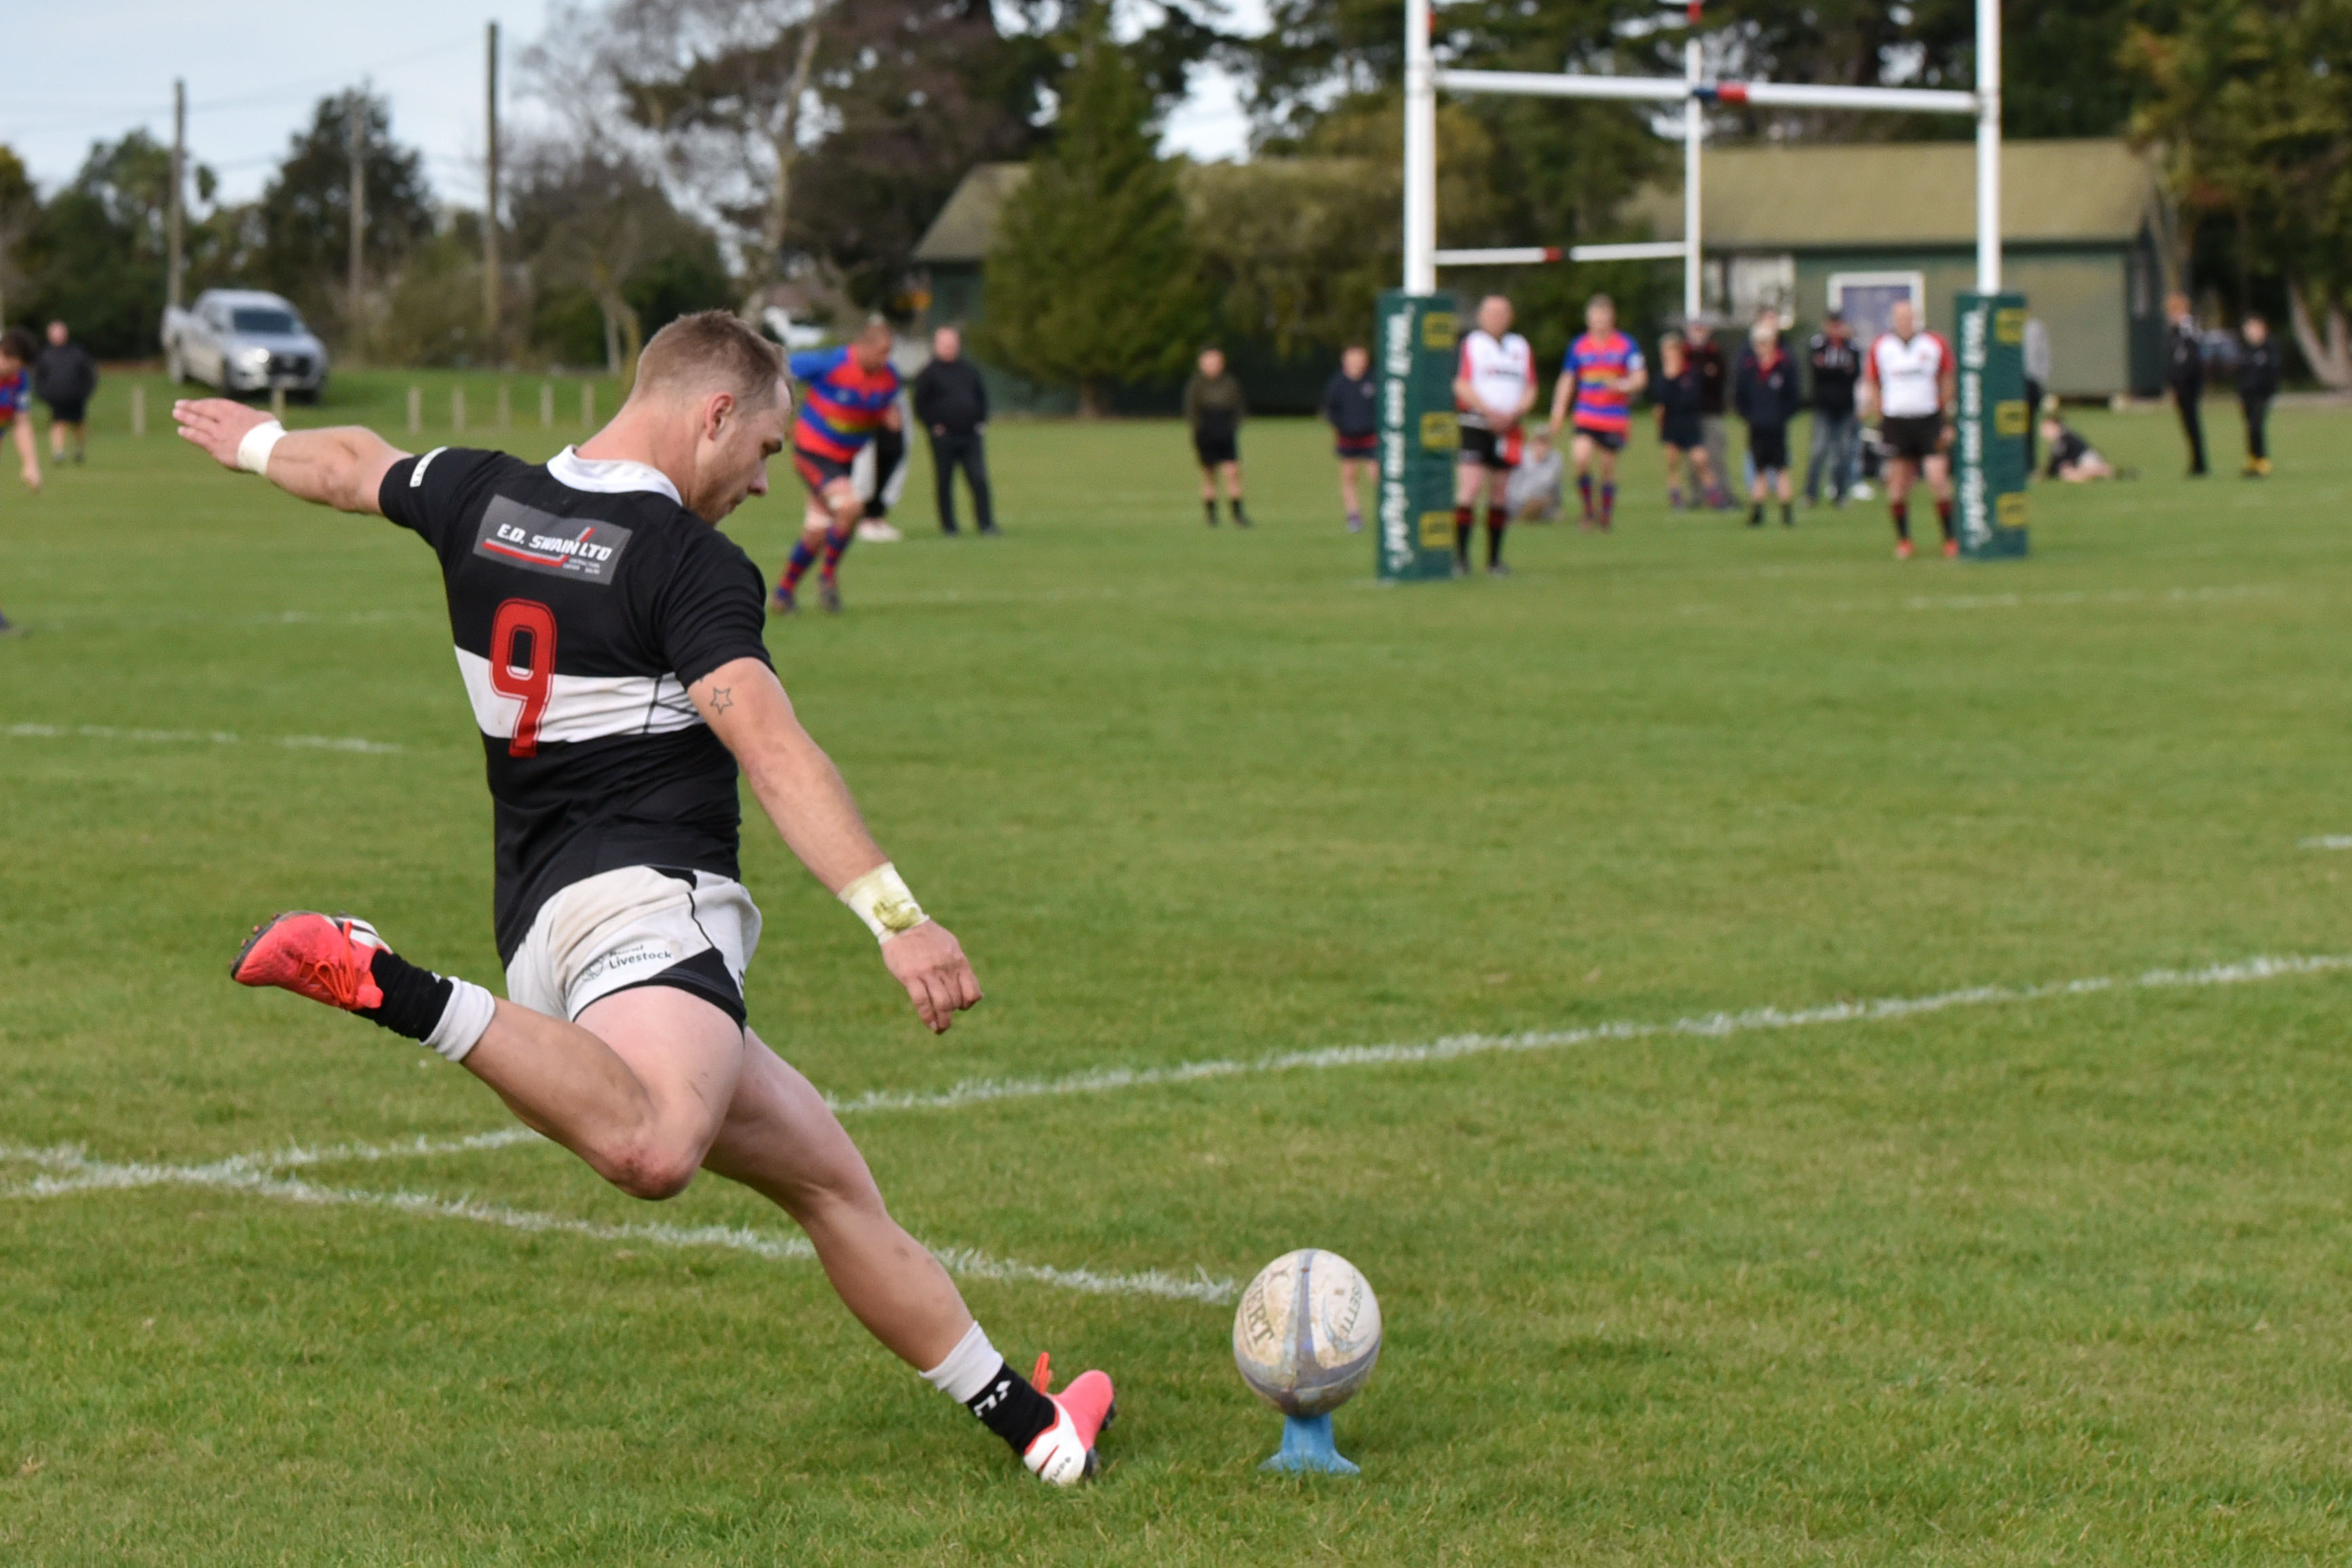 Waihora's Harry Kirk attempts to nail a conversion. Photo: Karen Casey